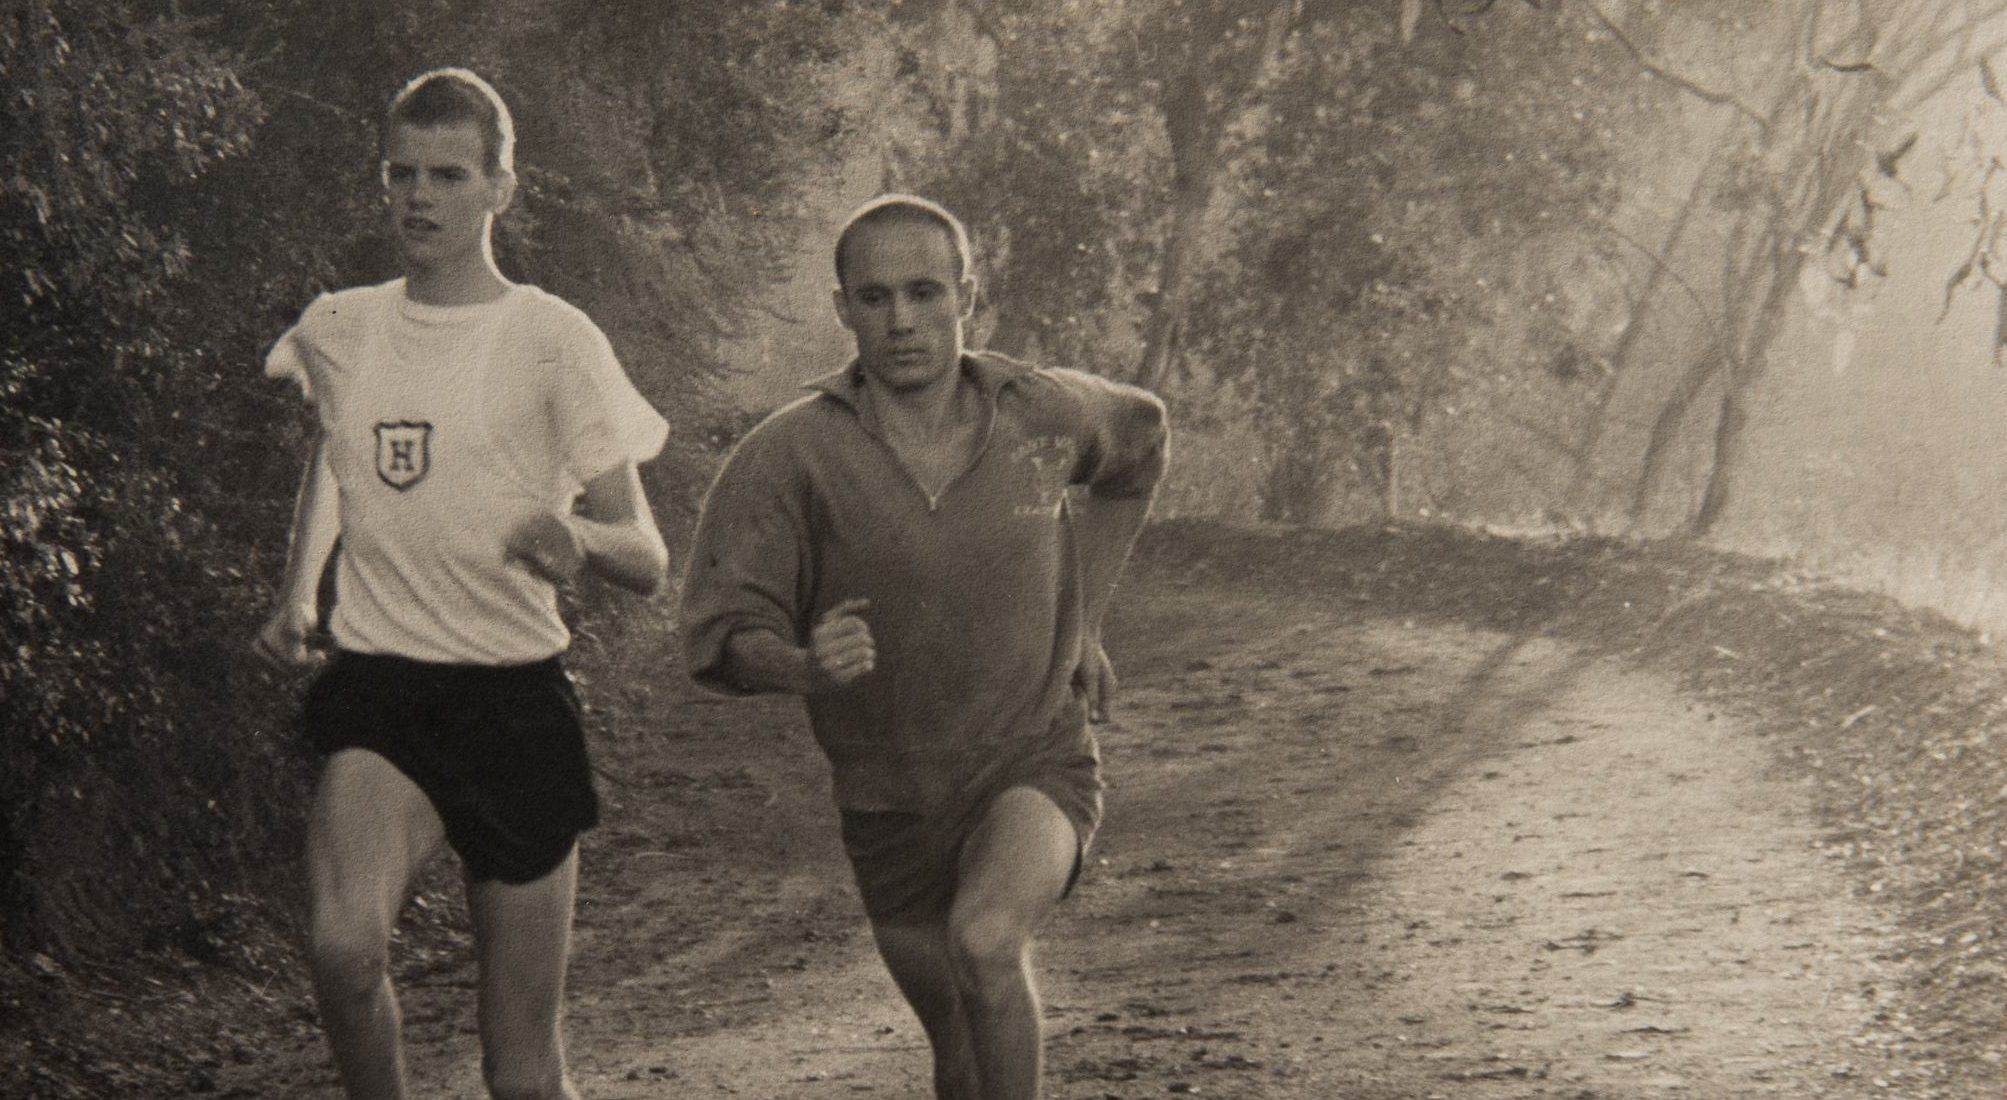 The Spirituality of Running: A Meditation for the Olympiad  Discover The Spirituality of Running: A Meditation for the Olympiad  Discover What we do with our bodies manifests and expresses inner states the sacred ground of our being. But bodily practices can also induce inner states. How we move how we sit how we breathe can all make a difference in our spiritual life. via The Spirituality of Running: A Meditation for the Olympiad  Discover Here we go http://ift.tt/2bnMqli ForgeByGames…